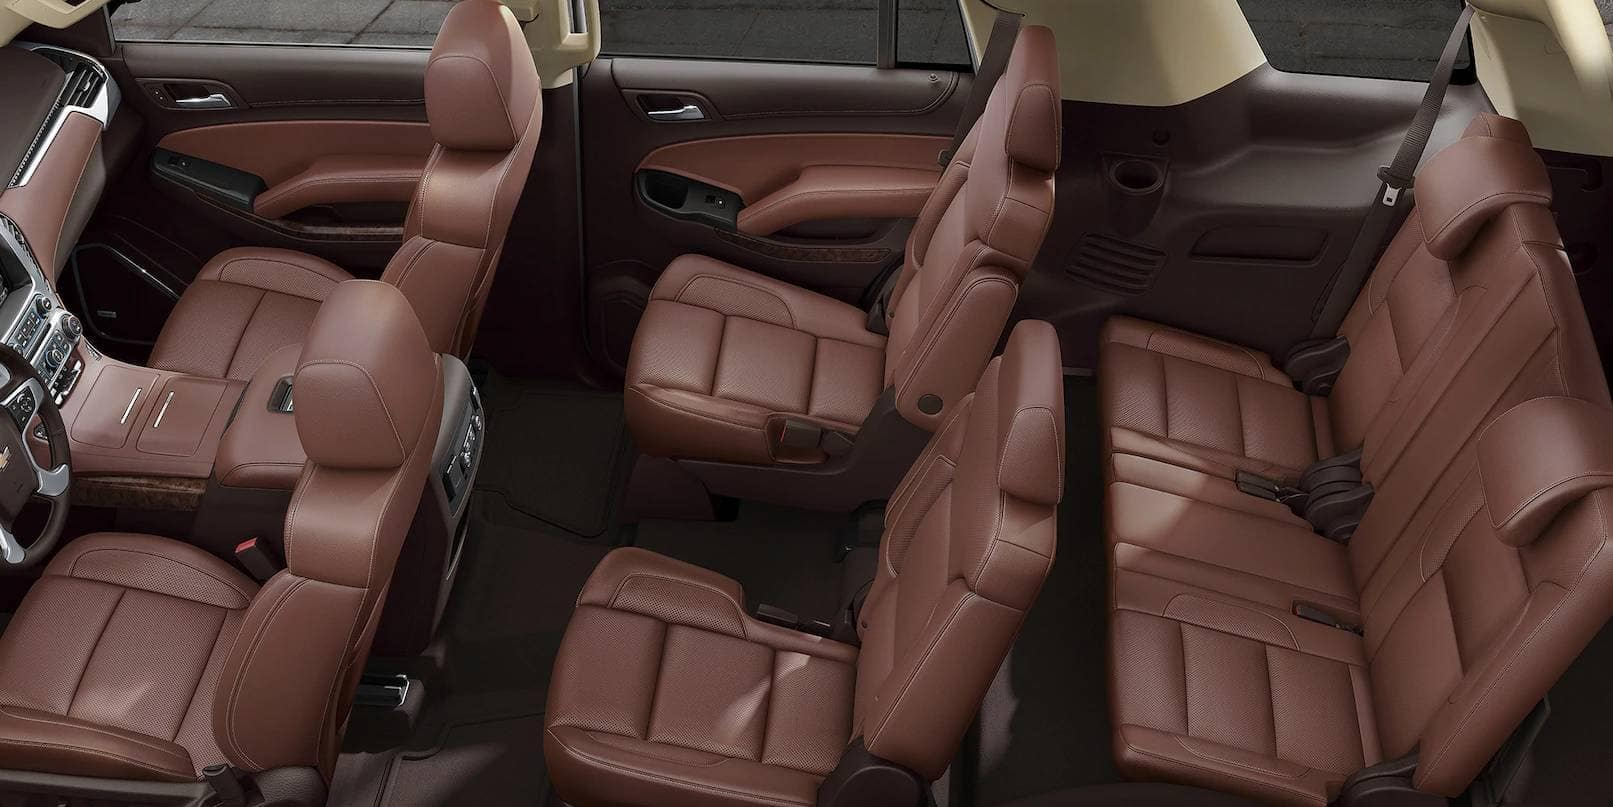 2019 Chevrolet Tahoe Interior Tan Leather Seats